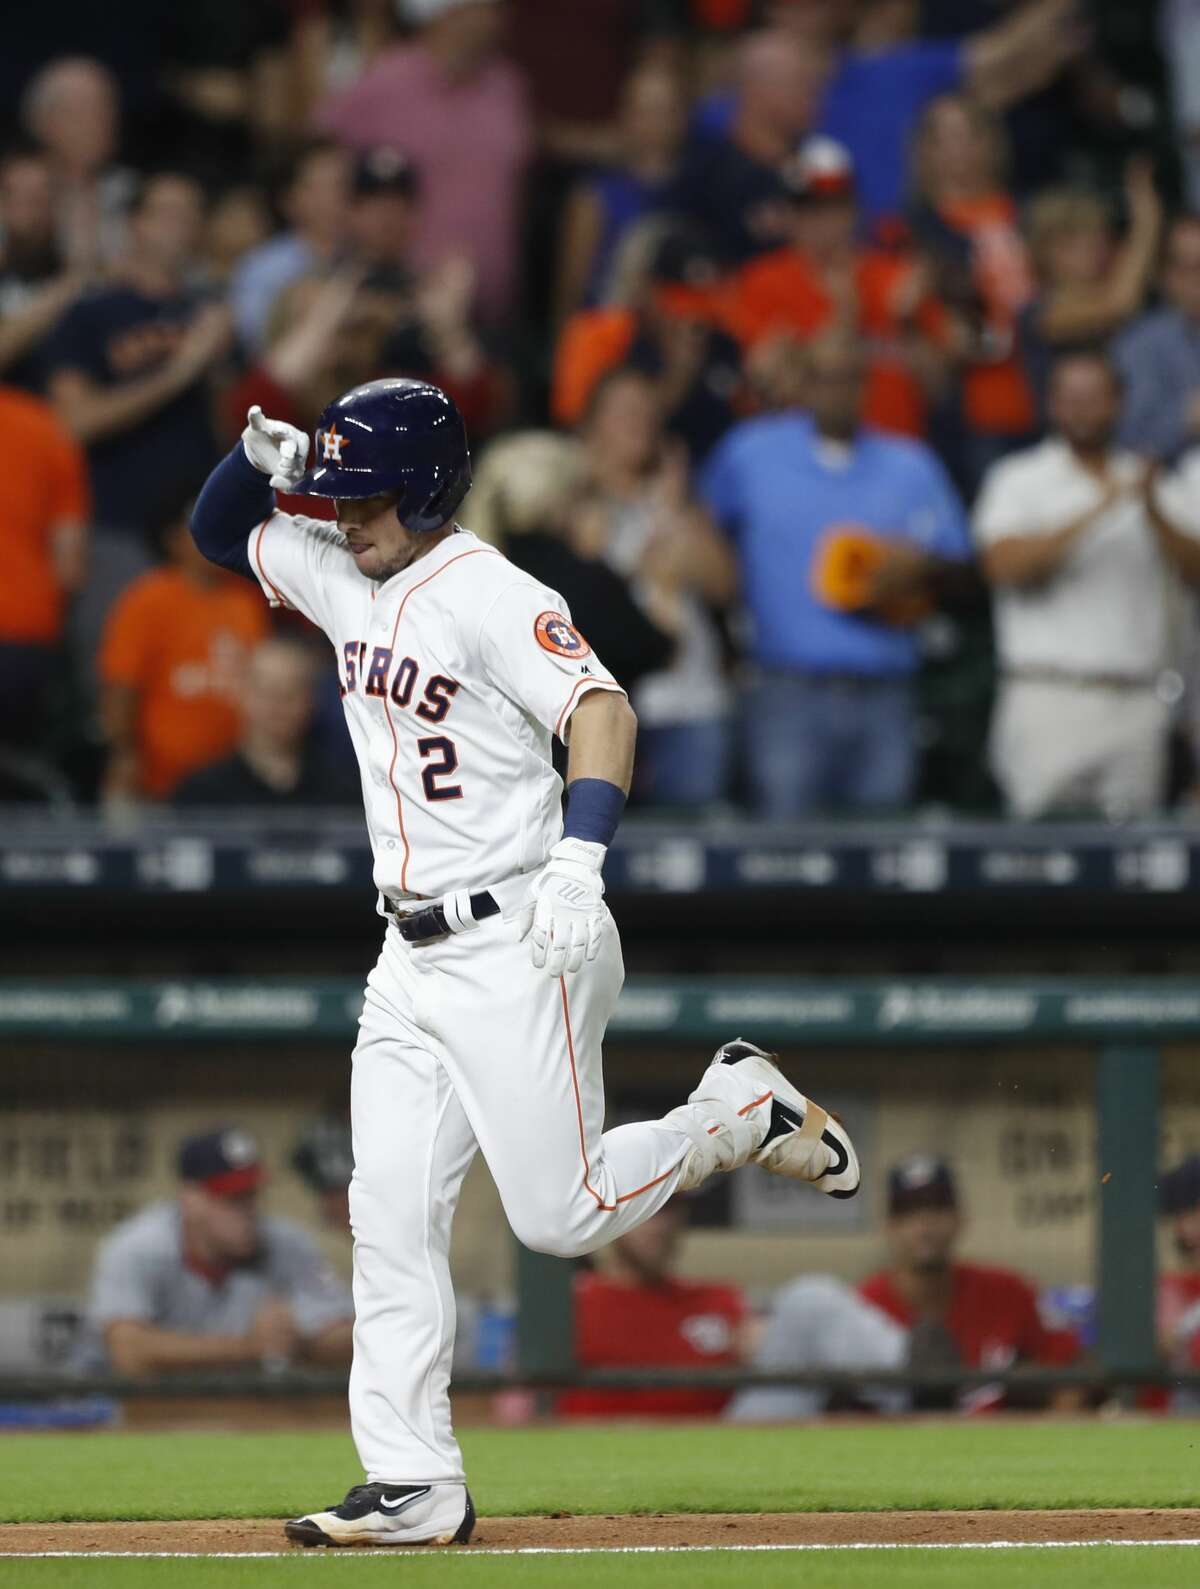 Houston Astros Alex Bregman (2) celebrates his three-run home run as he nears home plate in the eighth inning of an MLB baseball game at Minute Maid Park, Wednesday, Aug. 23, 2017, in Houston. ( Karen Warren / Houston Chronicle )